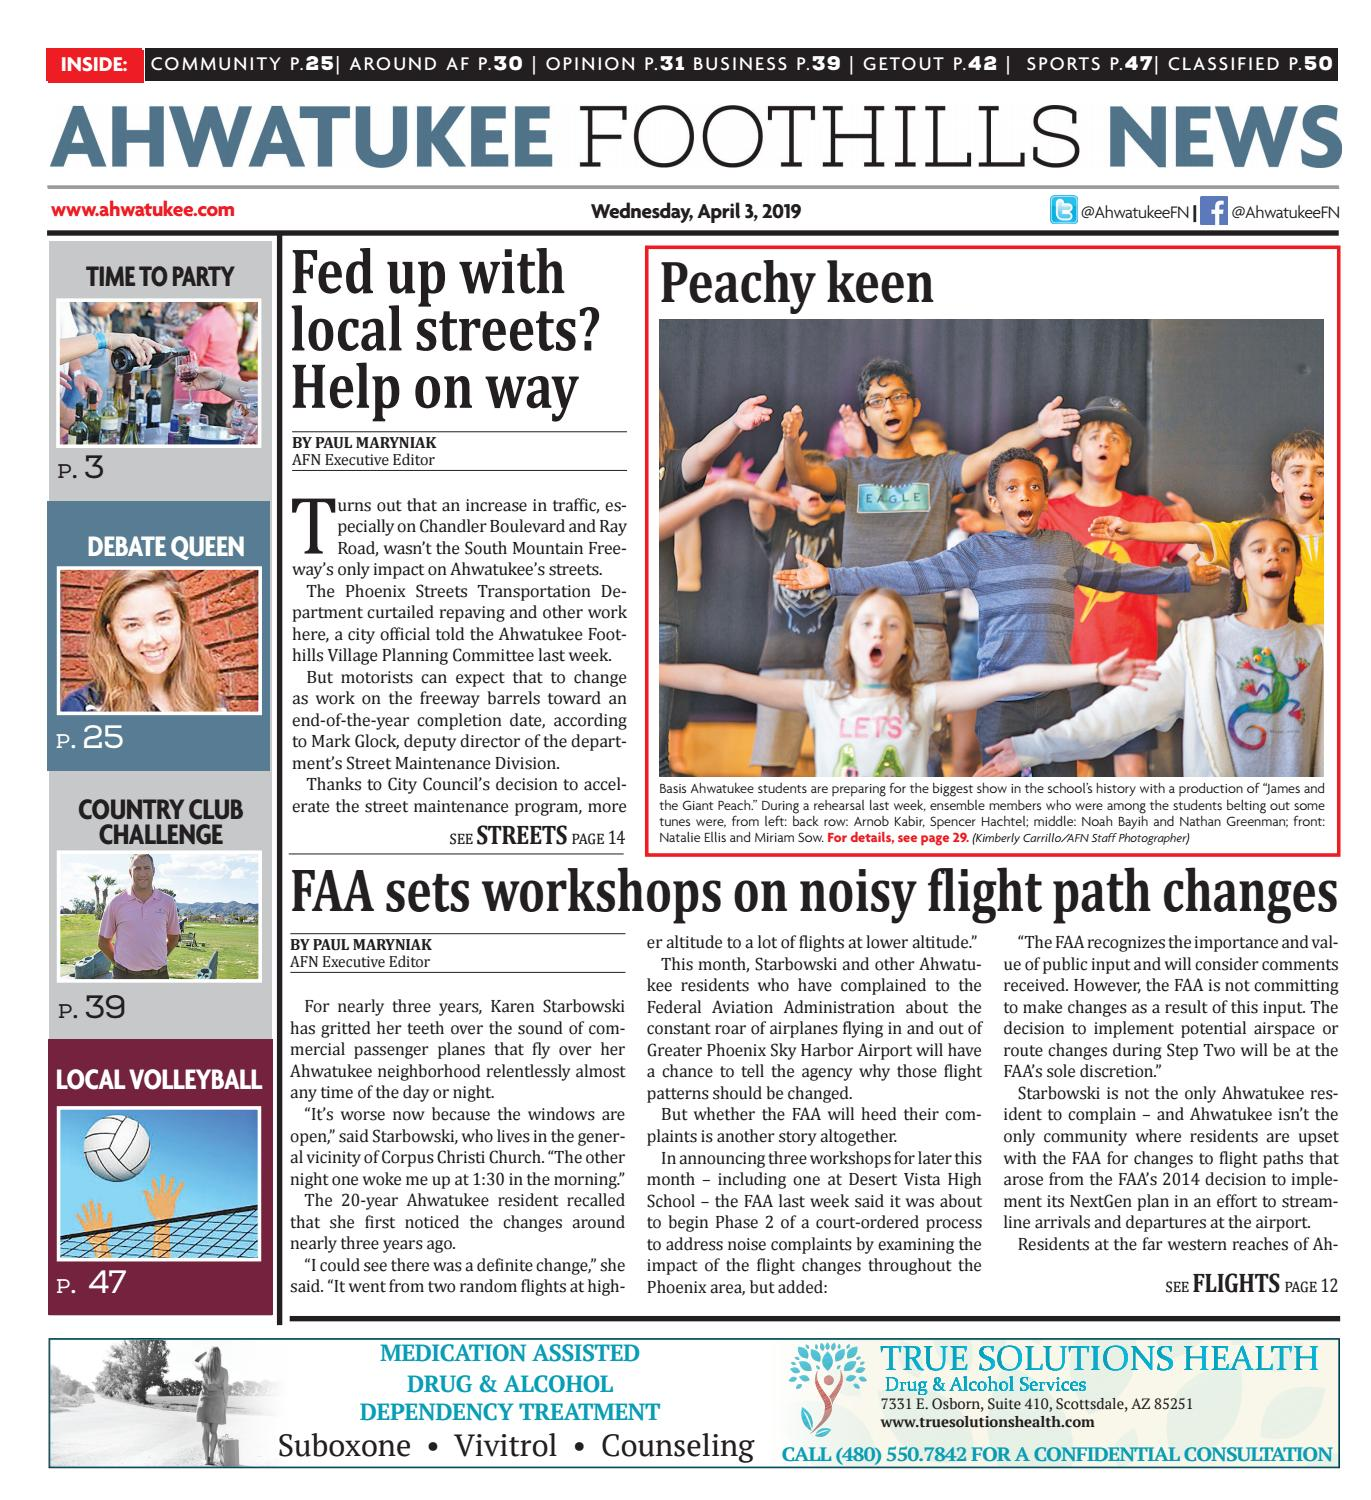 Ahwatukee Foothills News - April 3, 2019 by Times Media